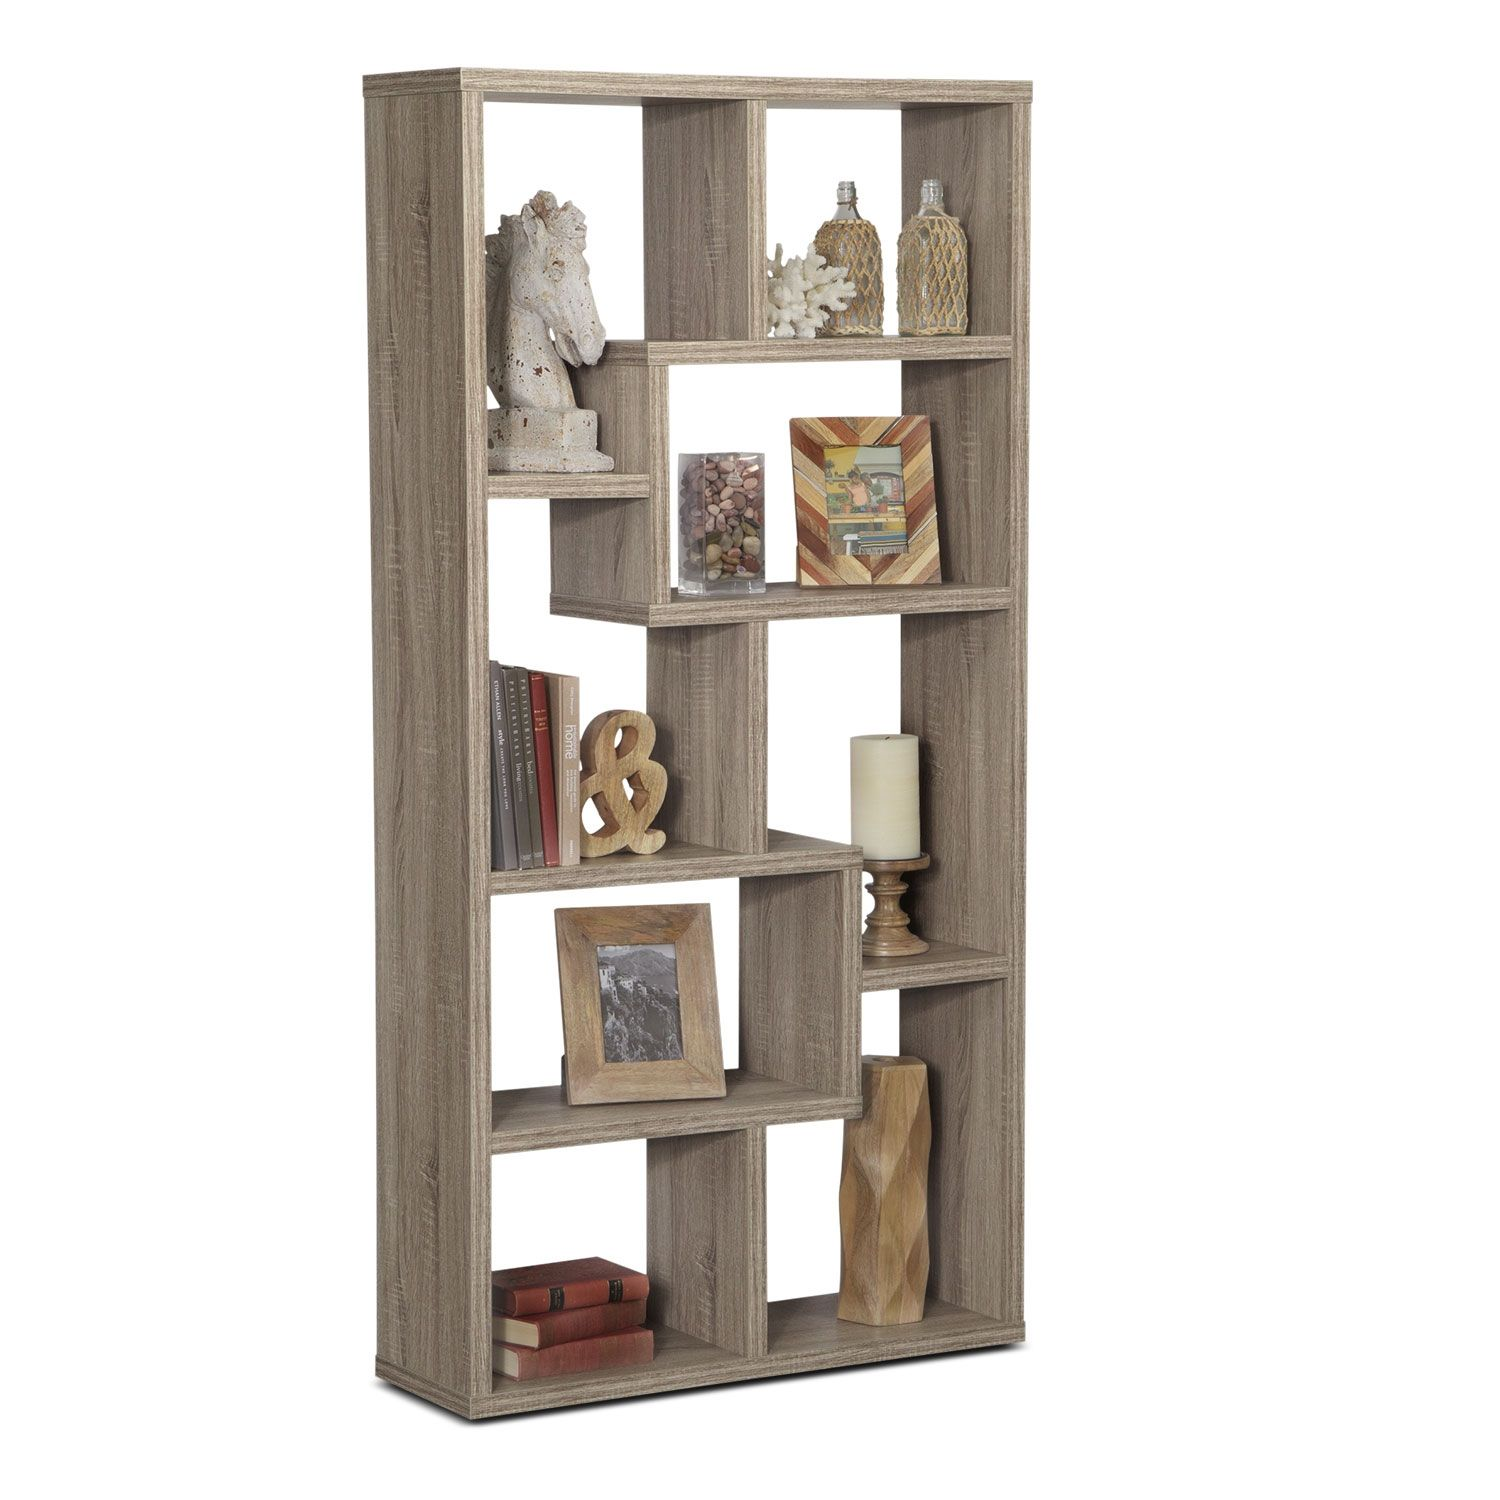 Cool Bookcase accent and occasional furniture - obsidian bookcase - taupe this